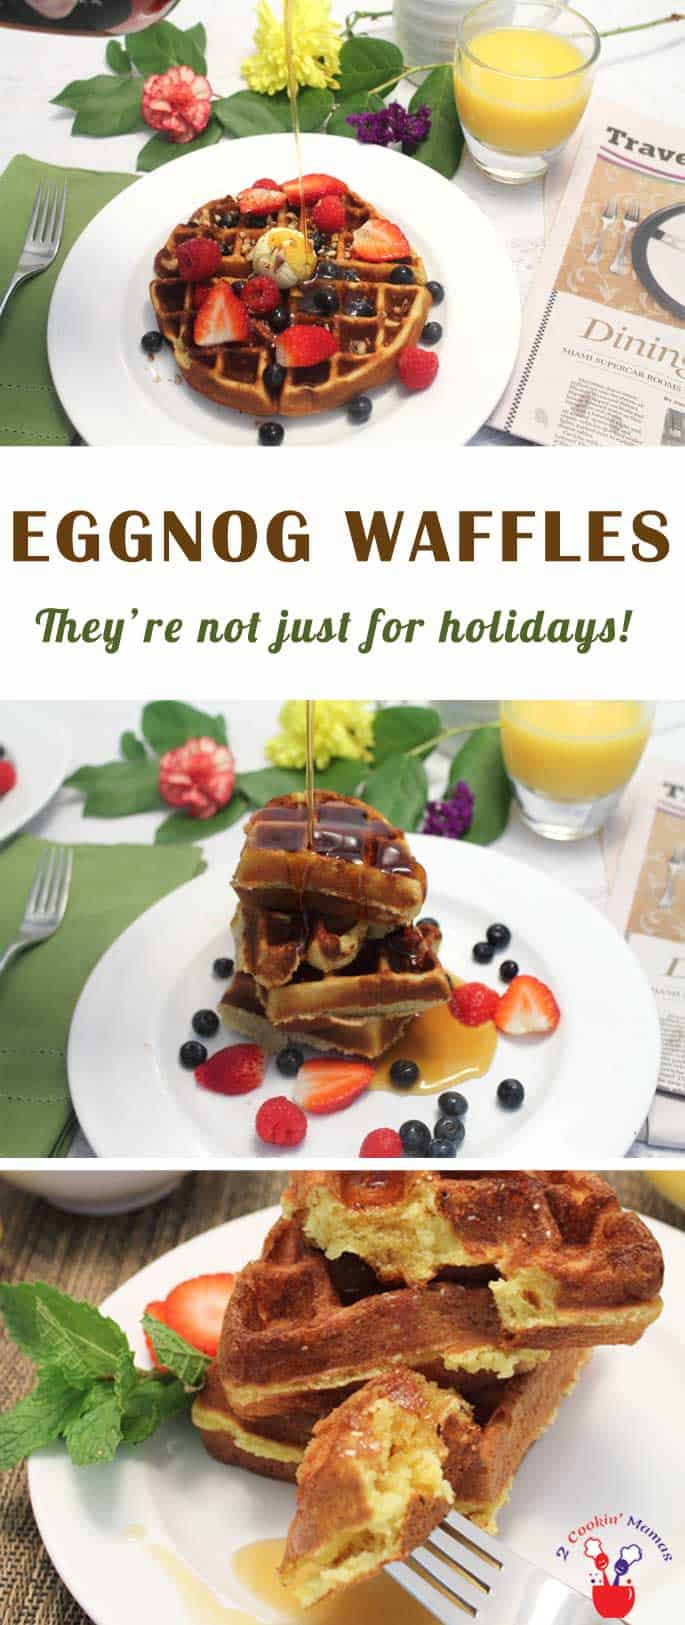 Eggnog Waffles | 2 Cookin Mamas These eggnog waffles combine all your favorite flavors to make crispy on the outside, soft & delicious on-the-inside waffles. And they're gluten-free too!